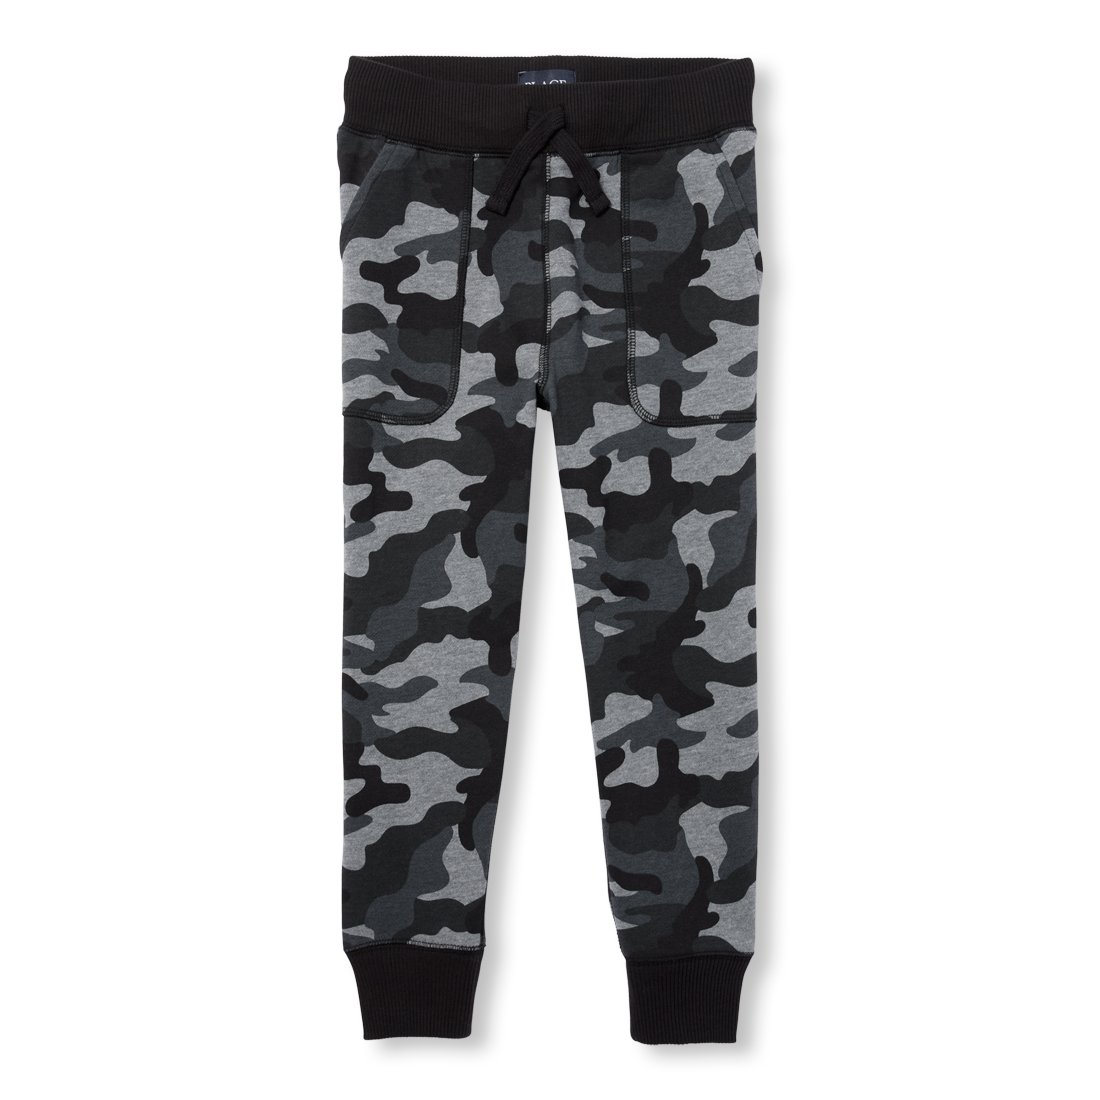 The Children's Place Big Boys' Fleece Jogger Pant The Children' s Place